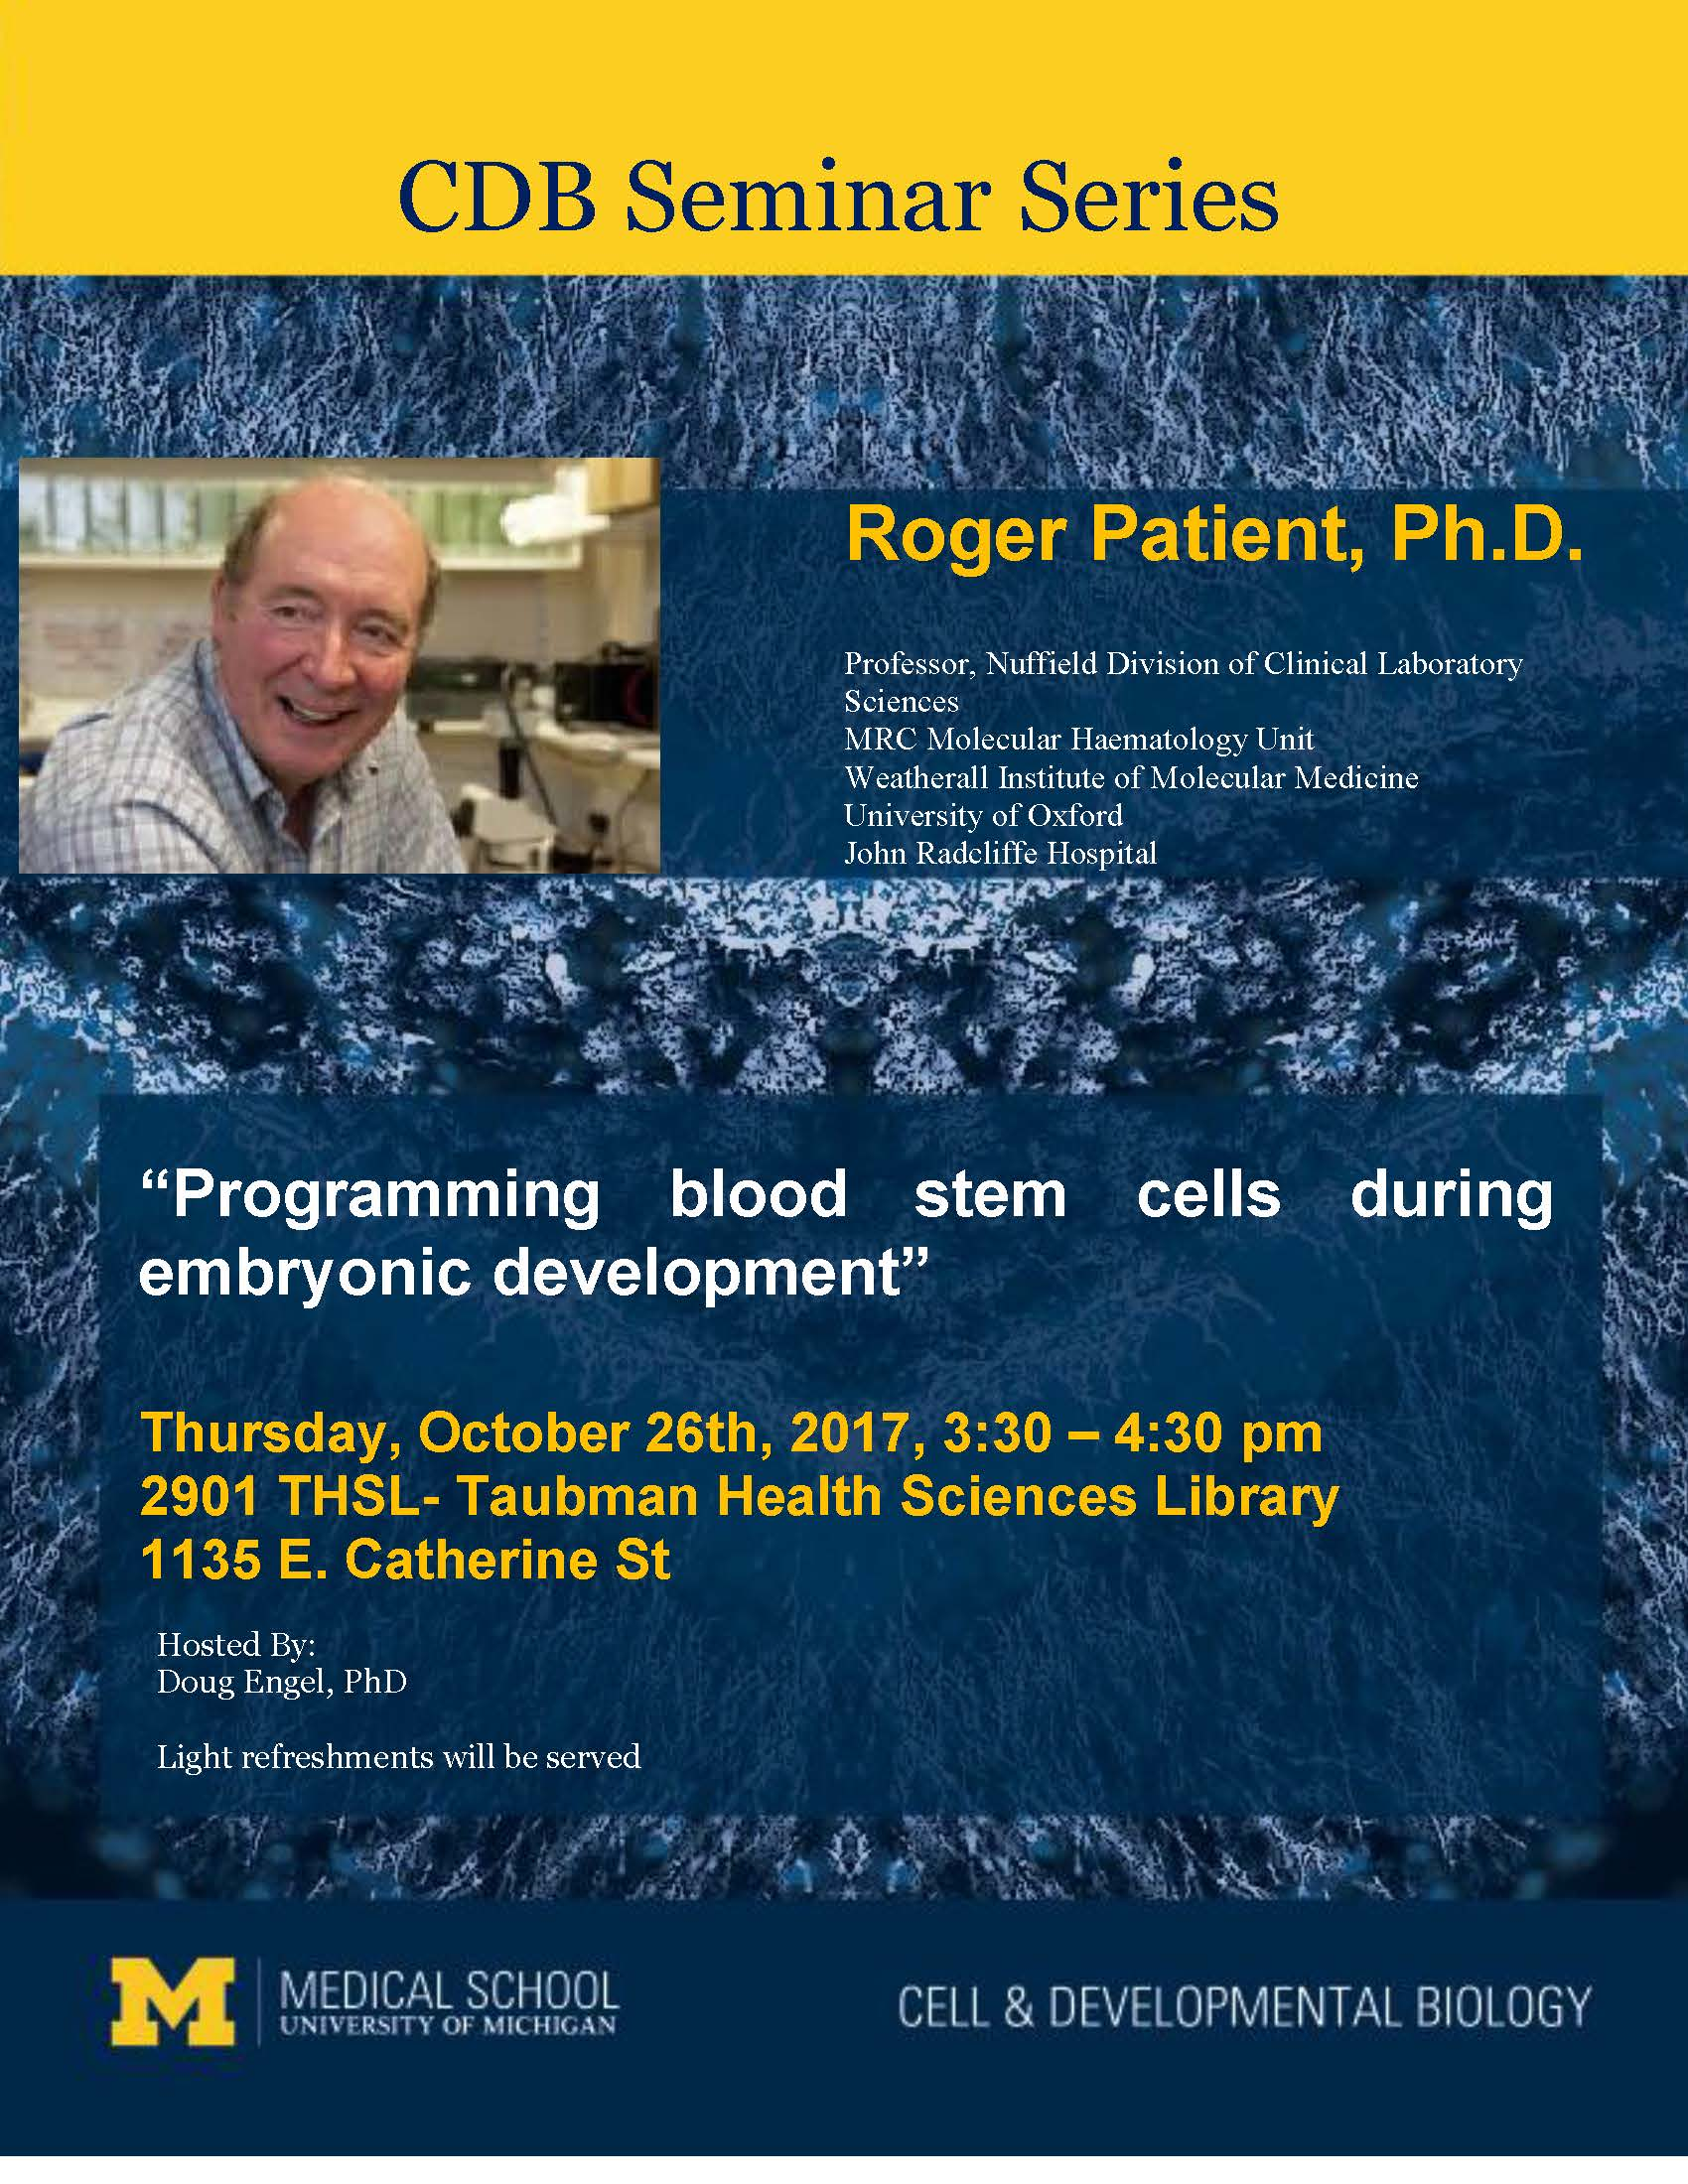 embryonic development cell roger20patient20seminar20flyer20102617 programming blood stem cells during embryonic development oxford seminars jobs